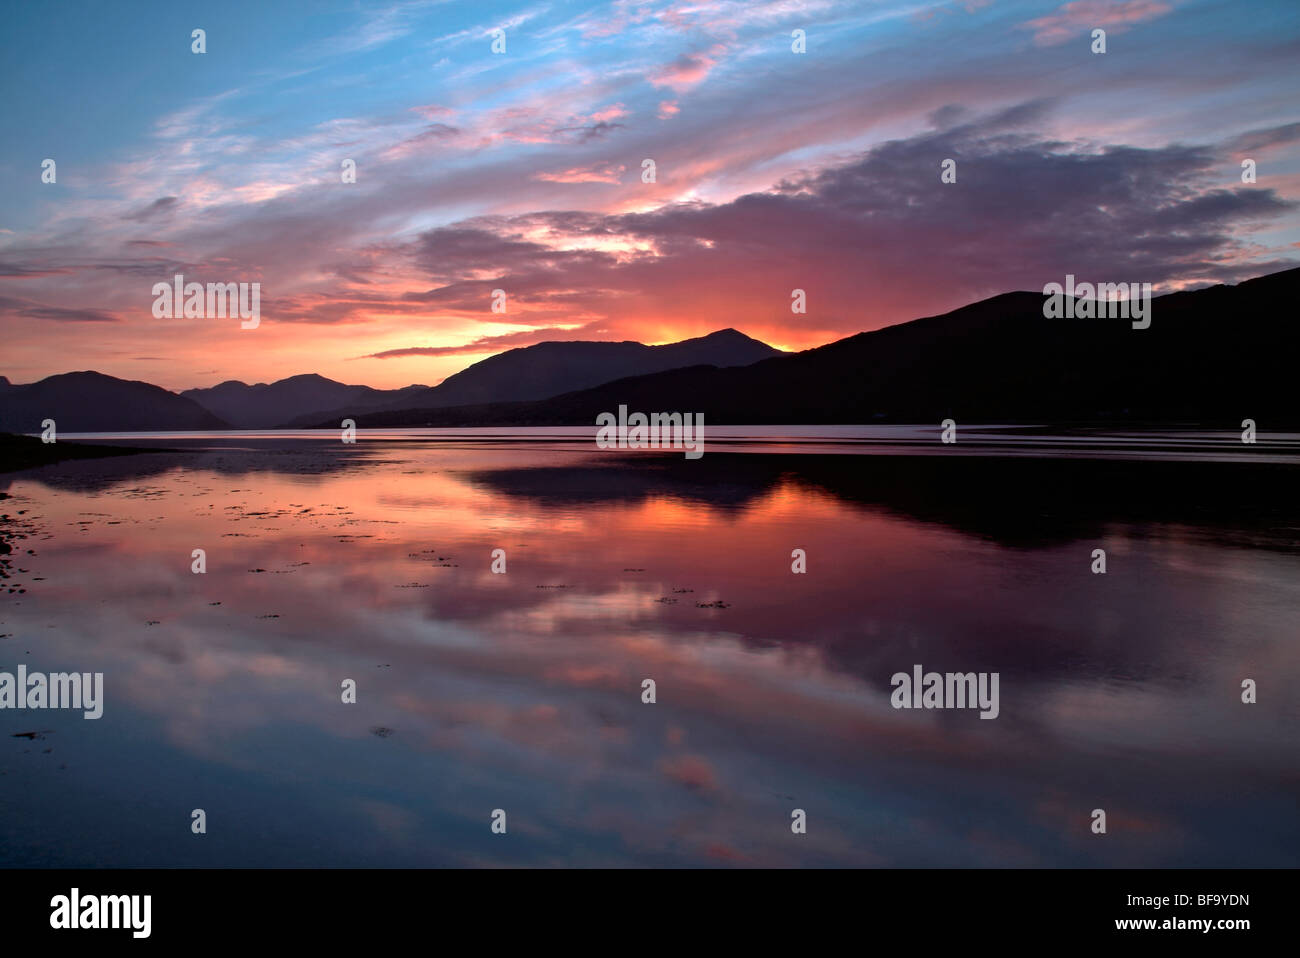 Sunset at Loch Linnhe, near North Ballachulish, Highlands, Scotland, UK - Stock Image